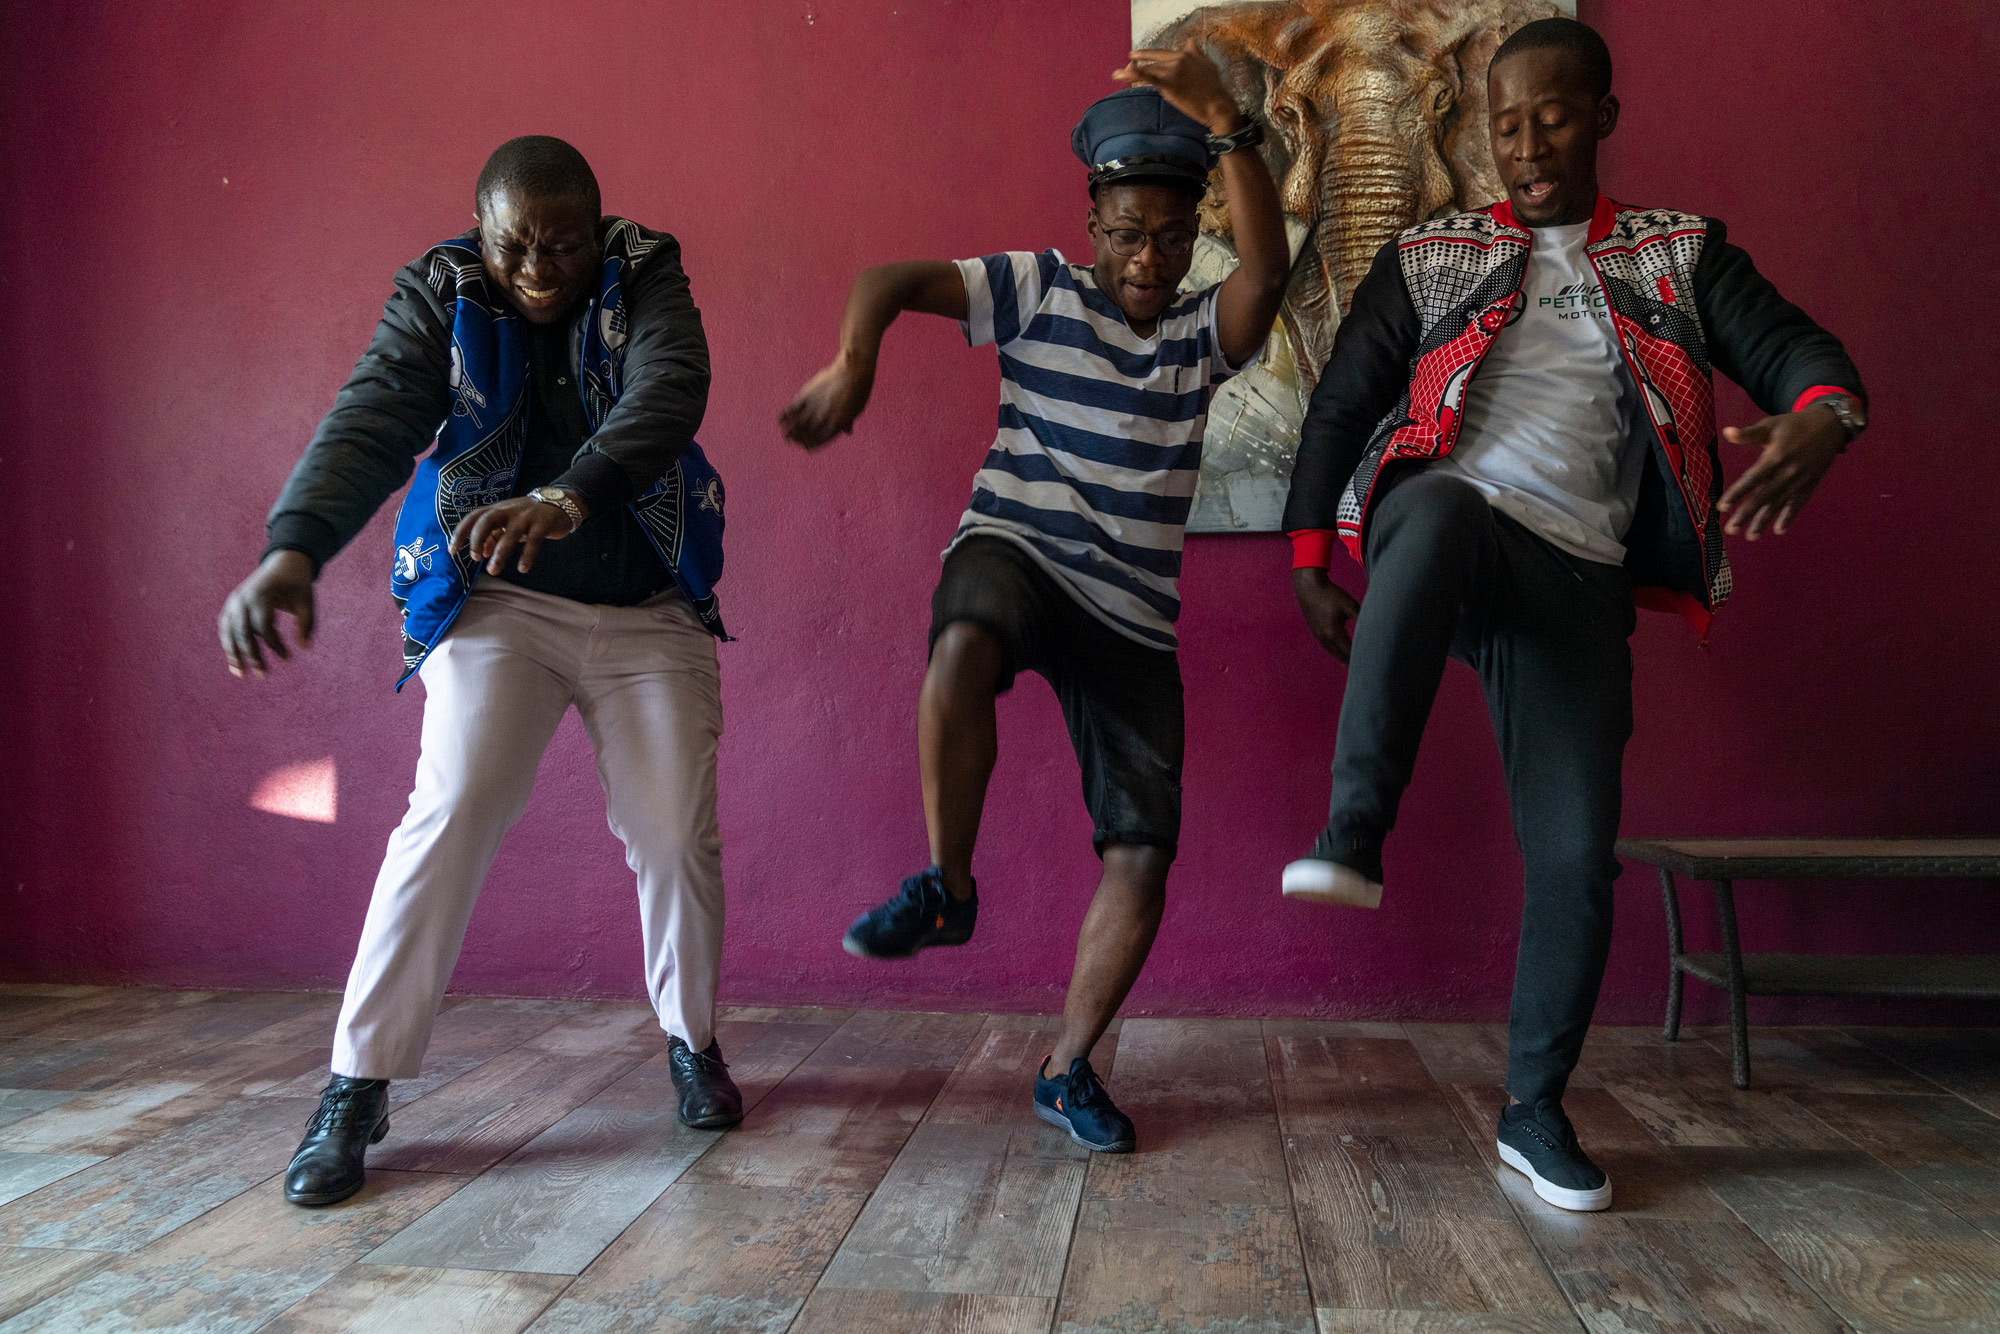 7 August 2019: Gedlembane, Smallz and S'lwane showing off some of their popular dance moves.